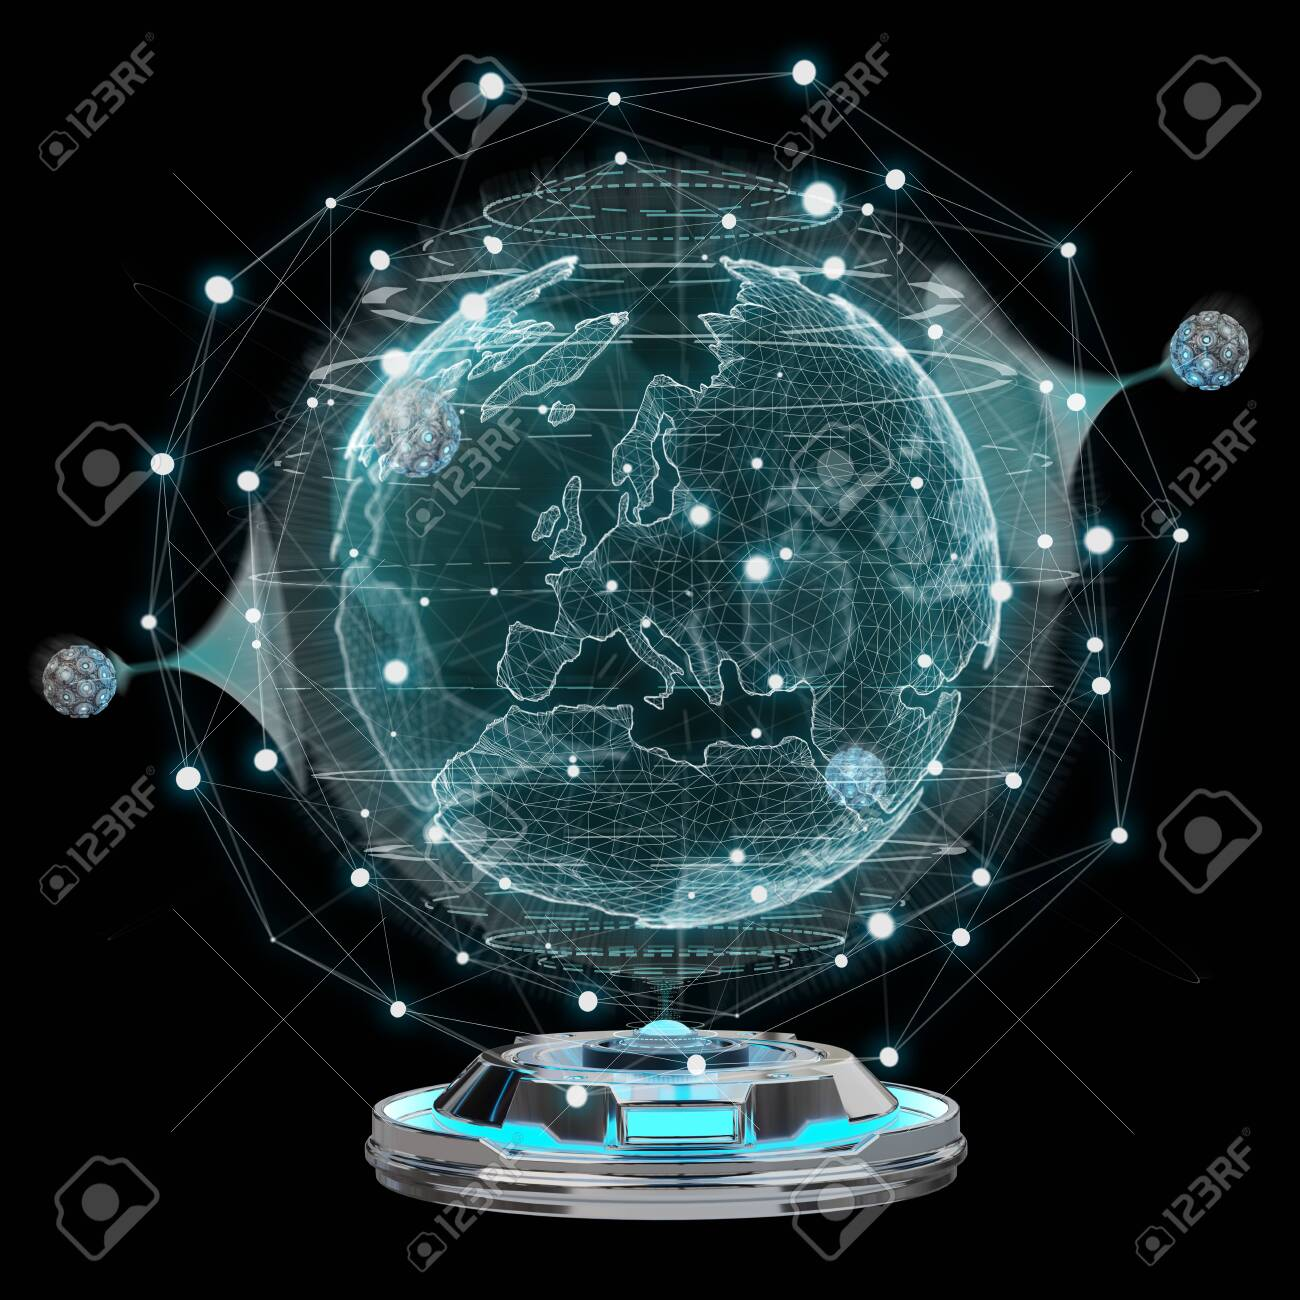 Globe network hologram projector with digital connection on dark